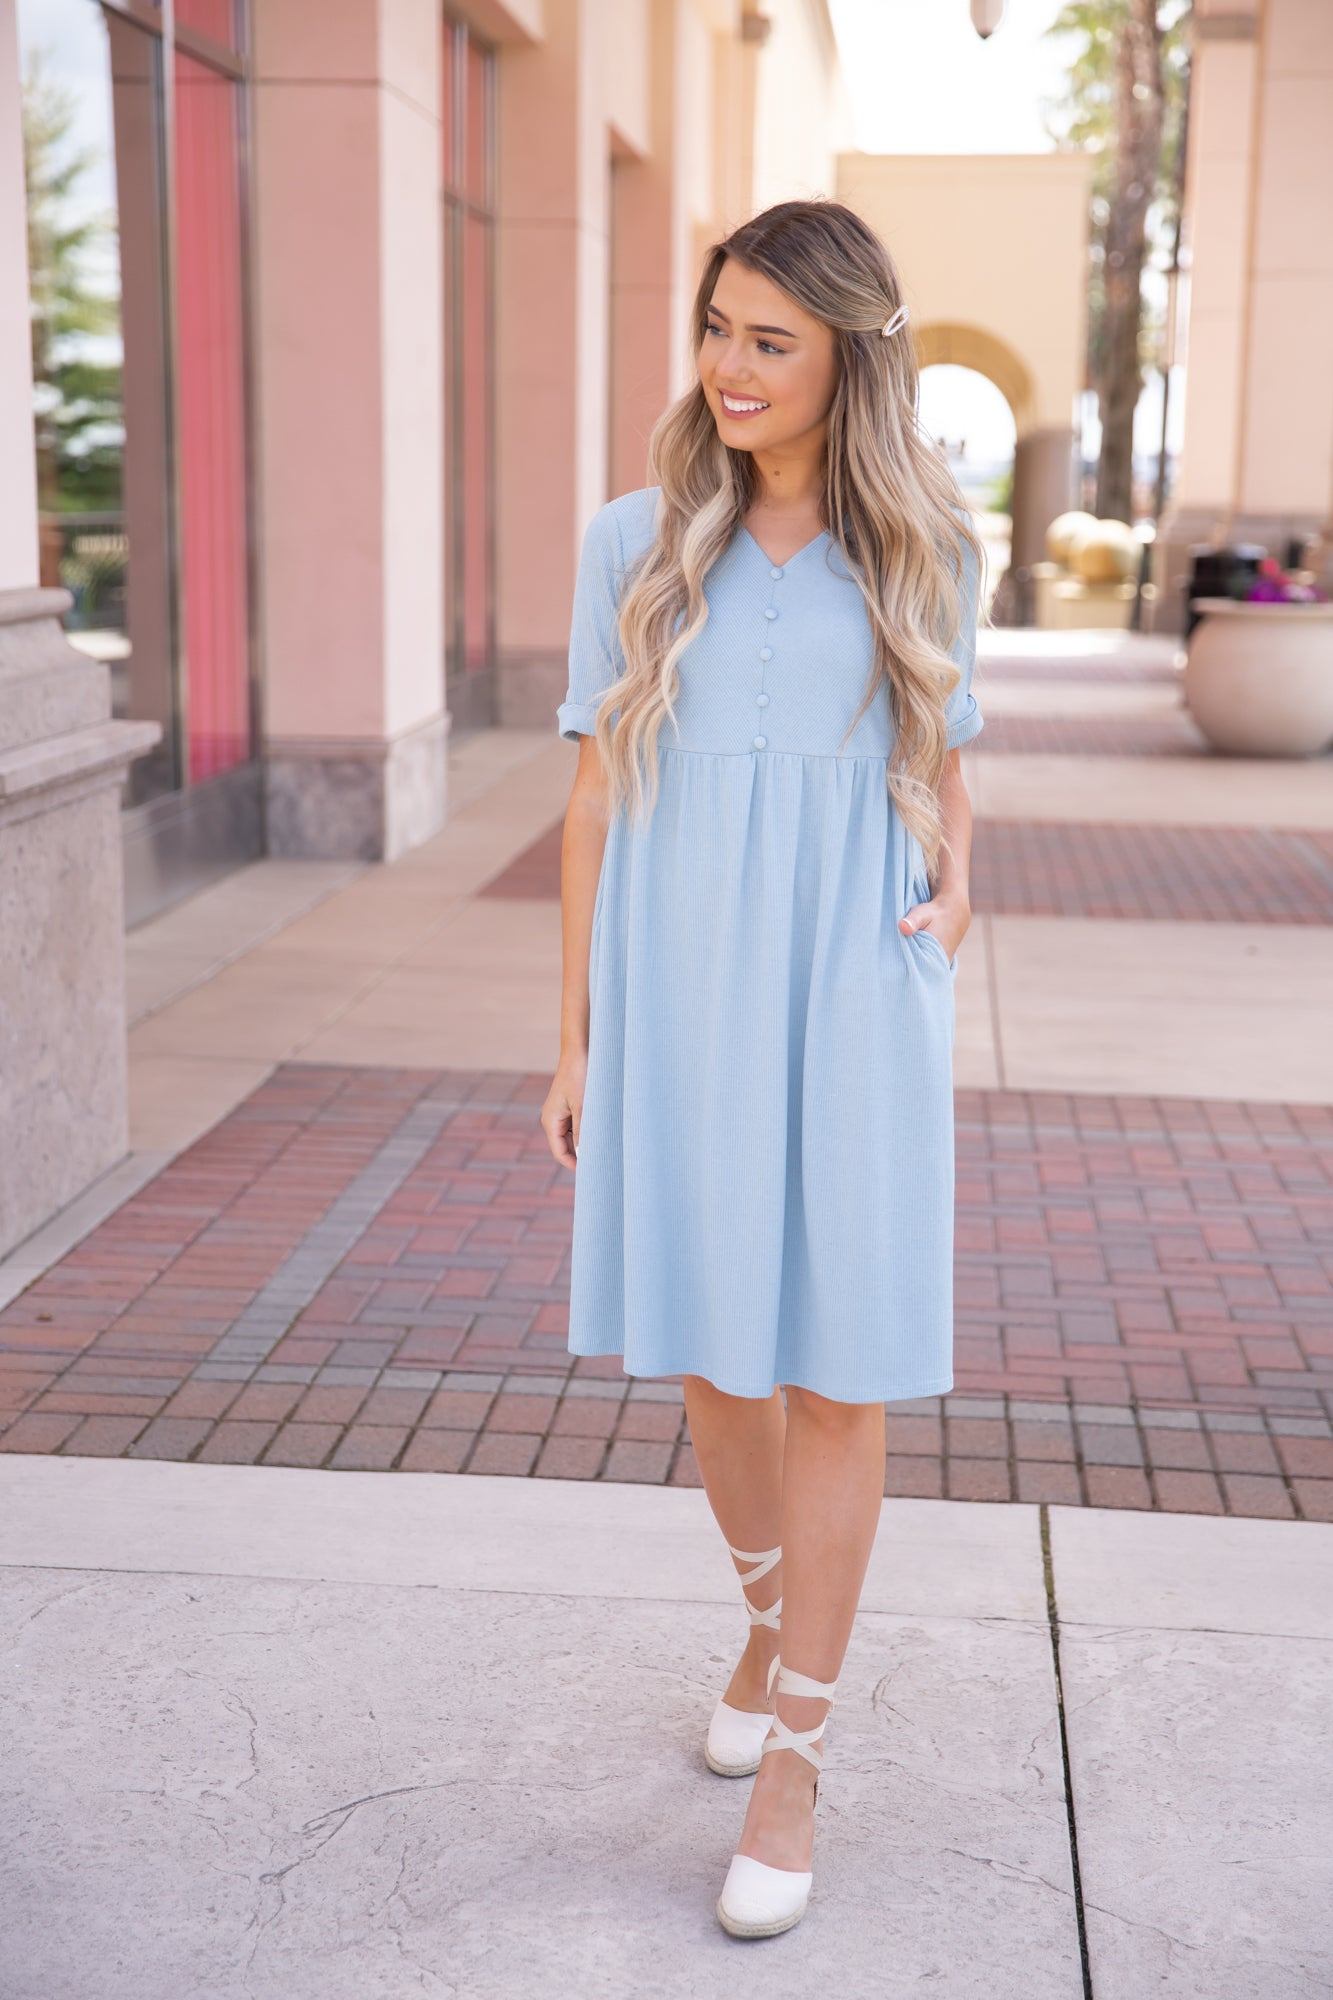 Something About Blue Midi Dress - llacie